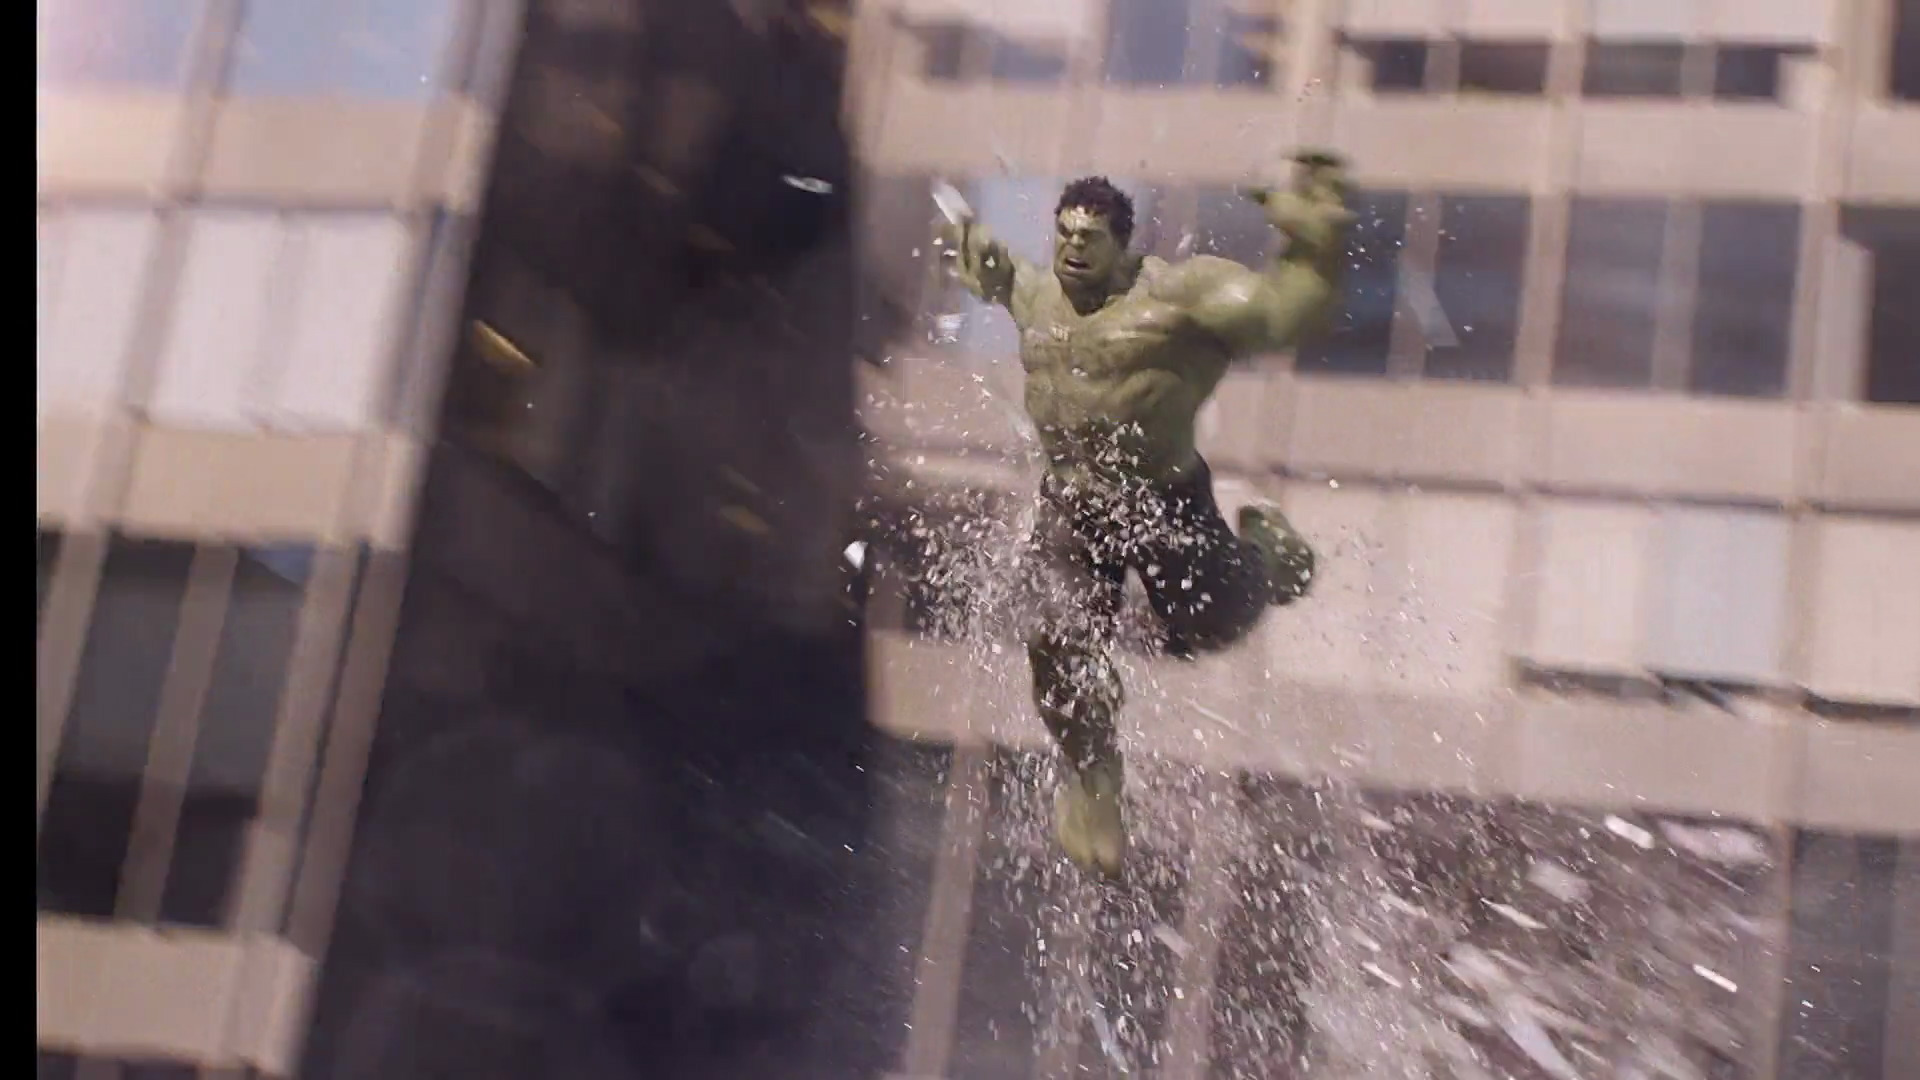 Hulk in The Avengers - The Incredible Hulk Photo (36100709 ...